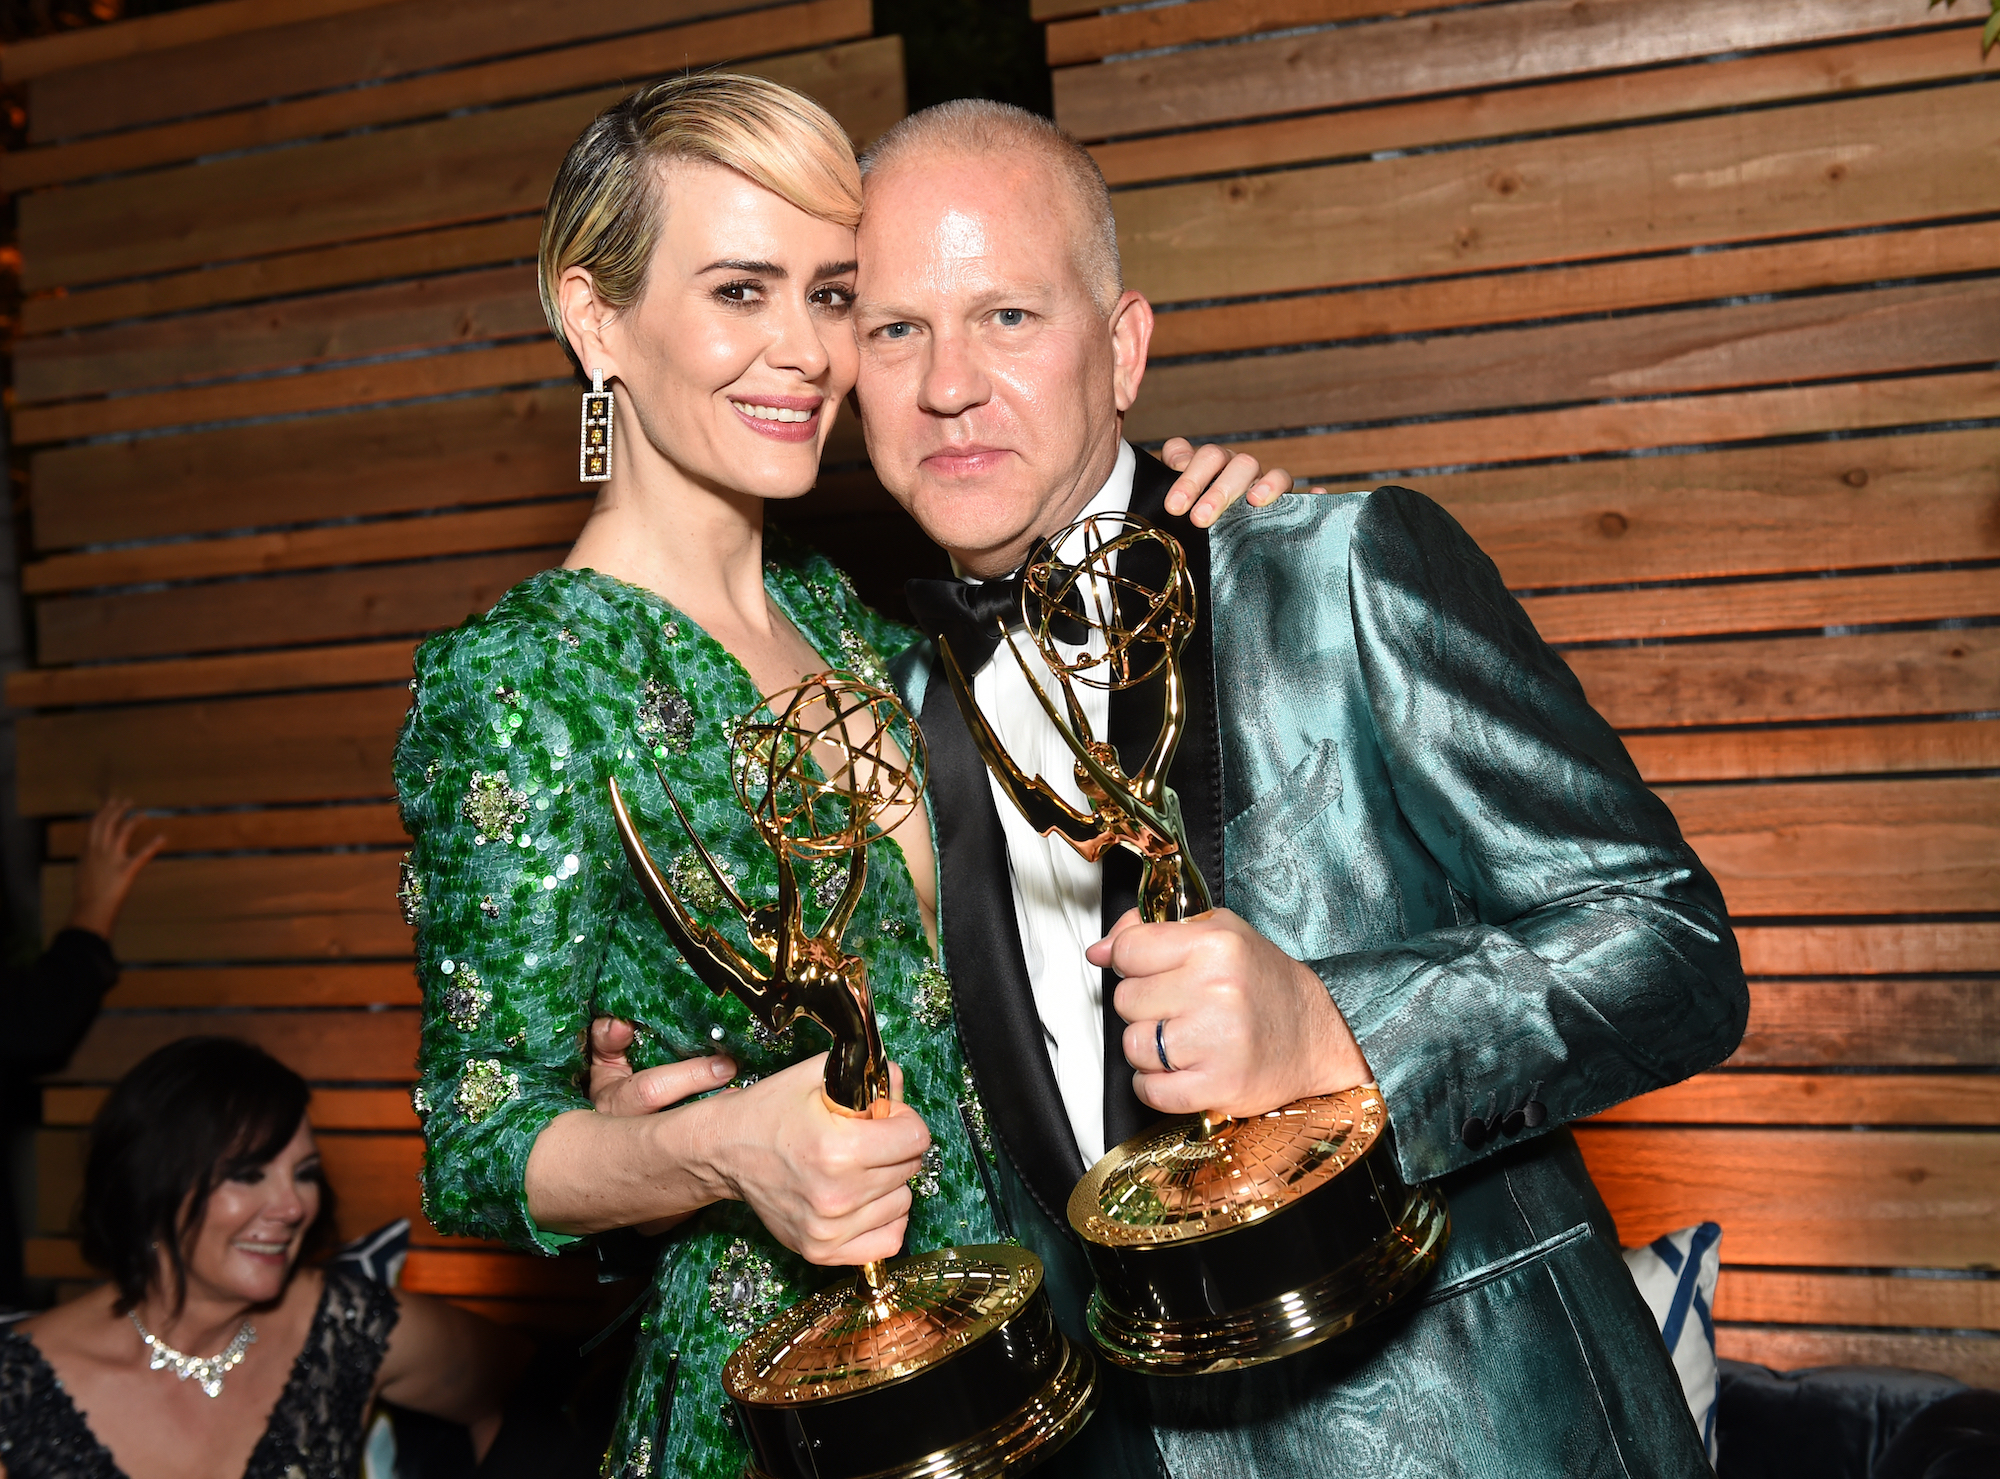 Sarah Paulson and Ryan Murphy at the FOX Broadcasting Company, FX, National Geographic, And Twentieth Century Fox Television's 68th Primetime Emmy Awards After Party on September 18, 2016.